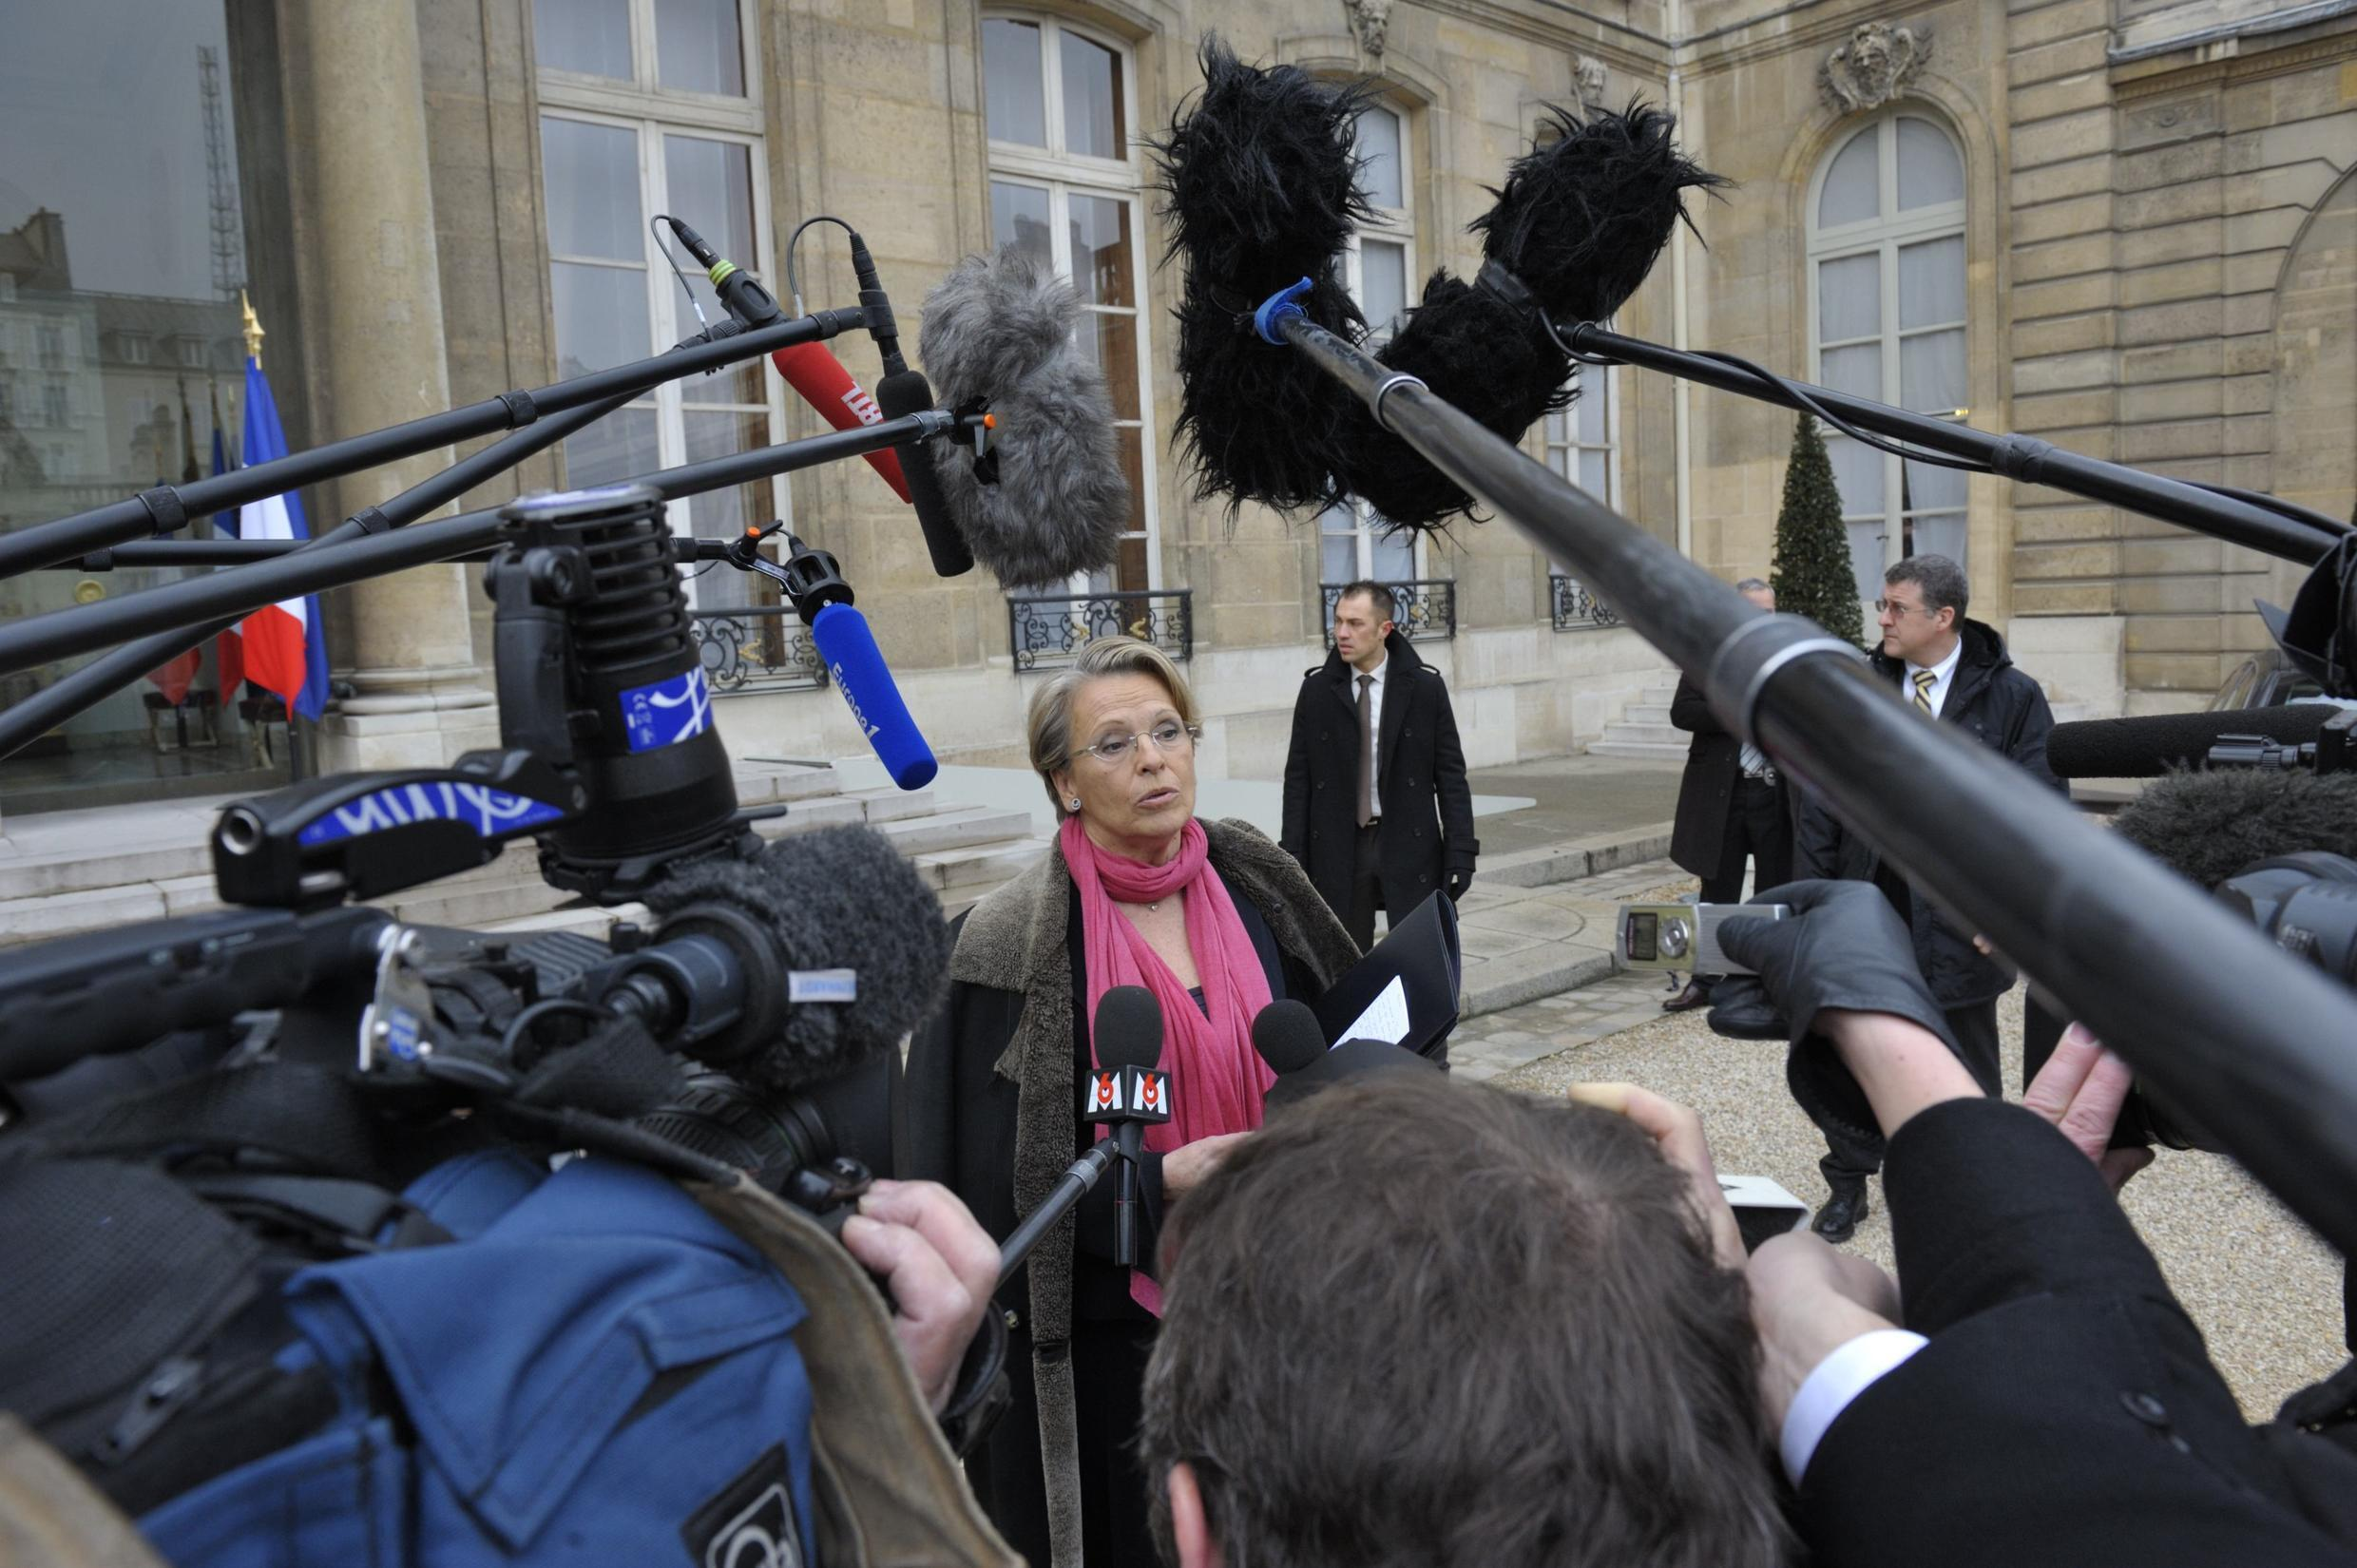 Foreign Minister Michèle Alliot-Marie faces the press (again)